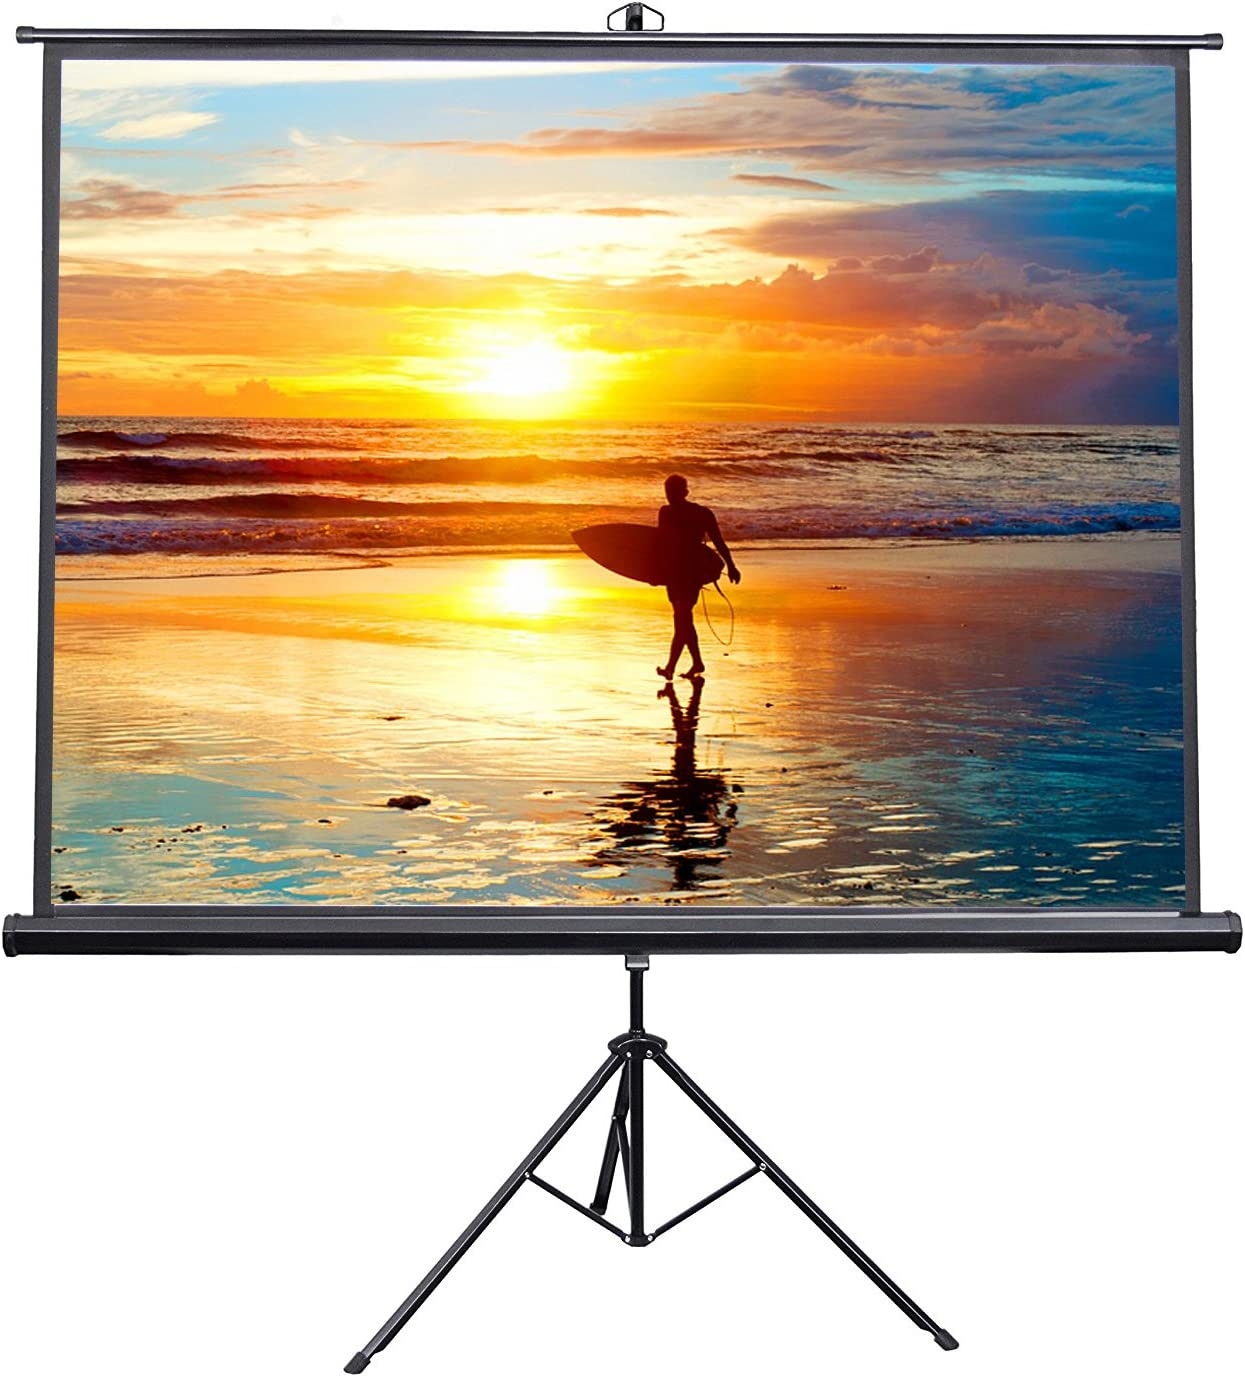 "VIVO 100"" Portable Indoor Outdoor Projector Screen, 100 Inch Diagonal Projection HD 4:3 Projection Pull Up Foldable Stand Tripod (PS-T-100): Electronics"